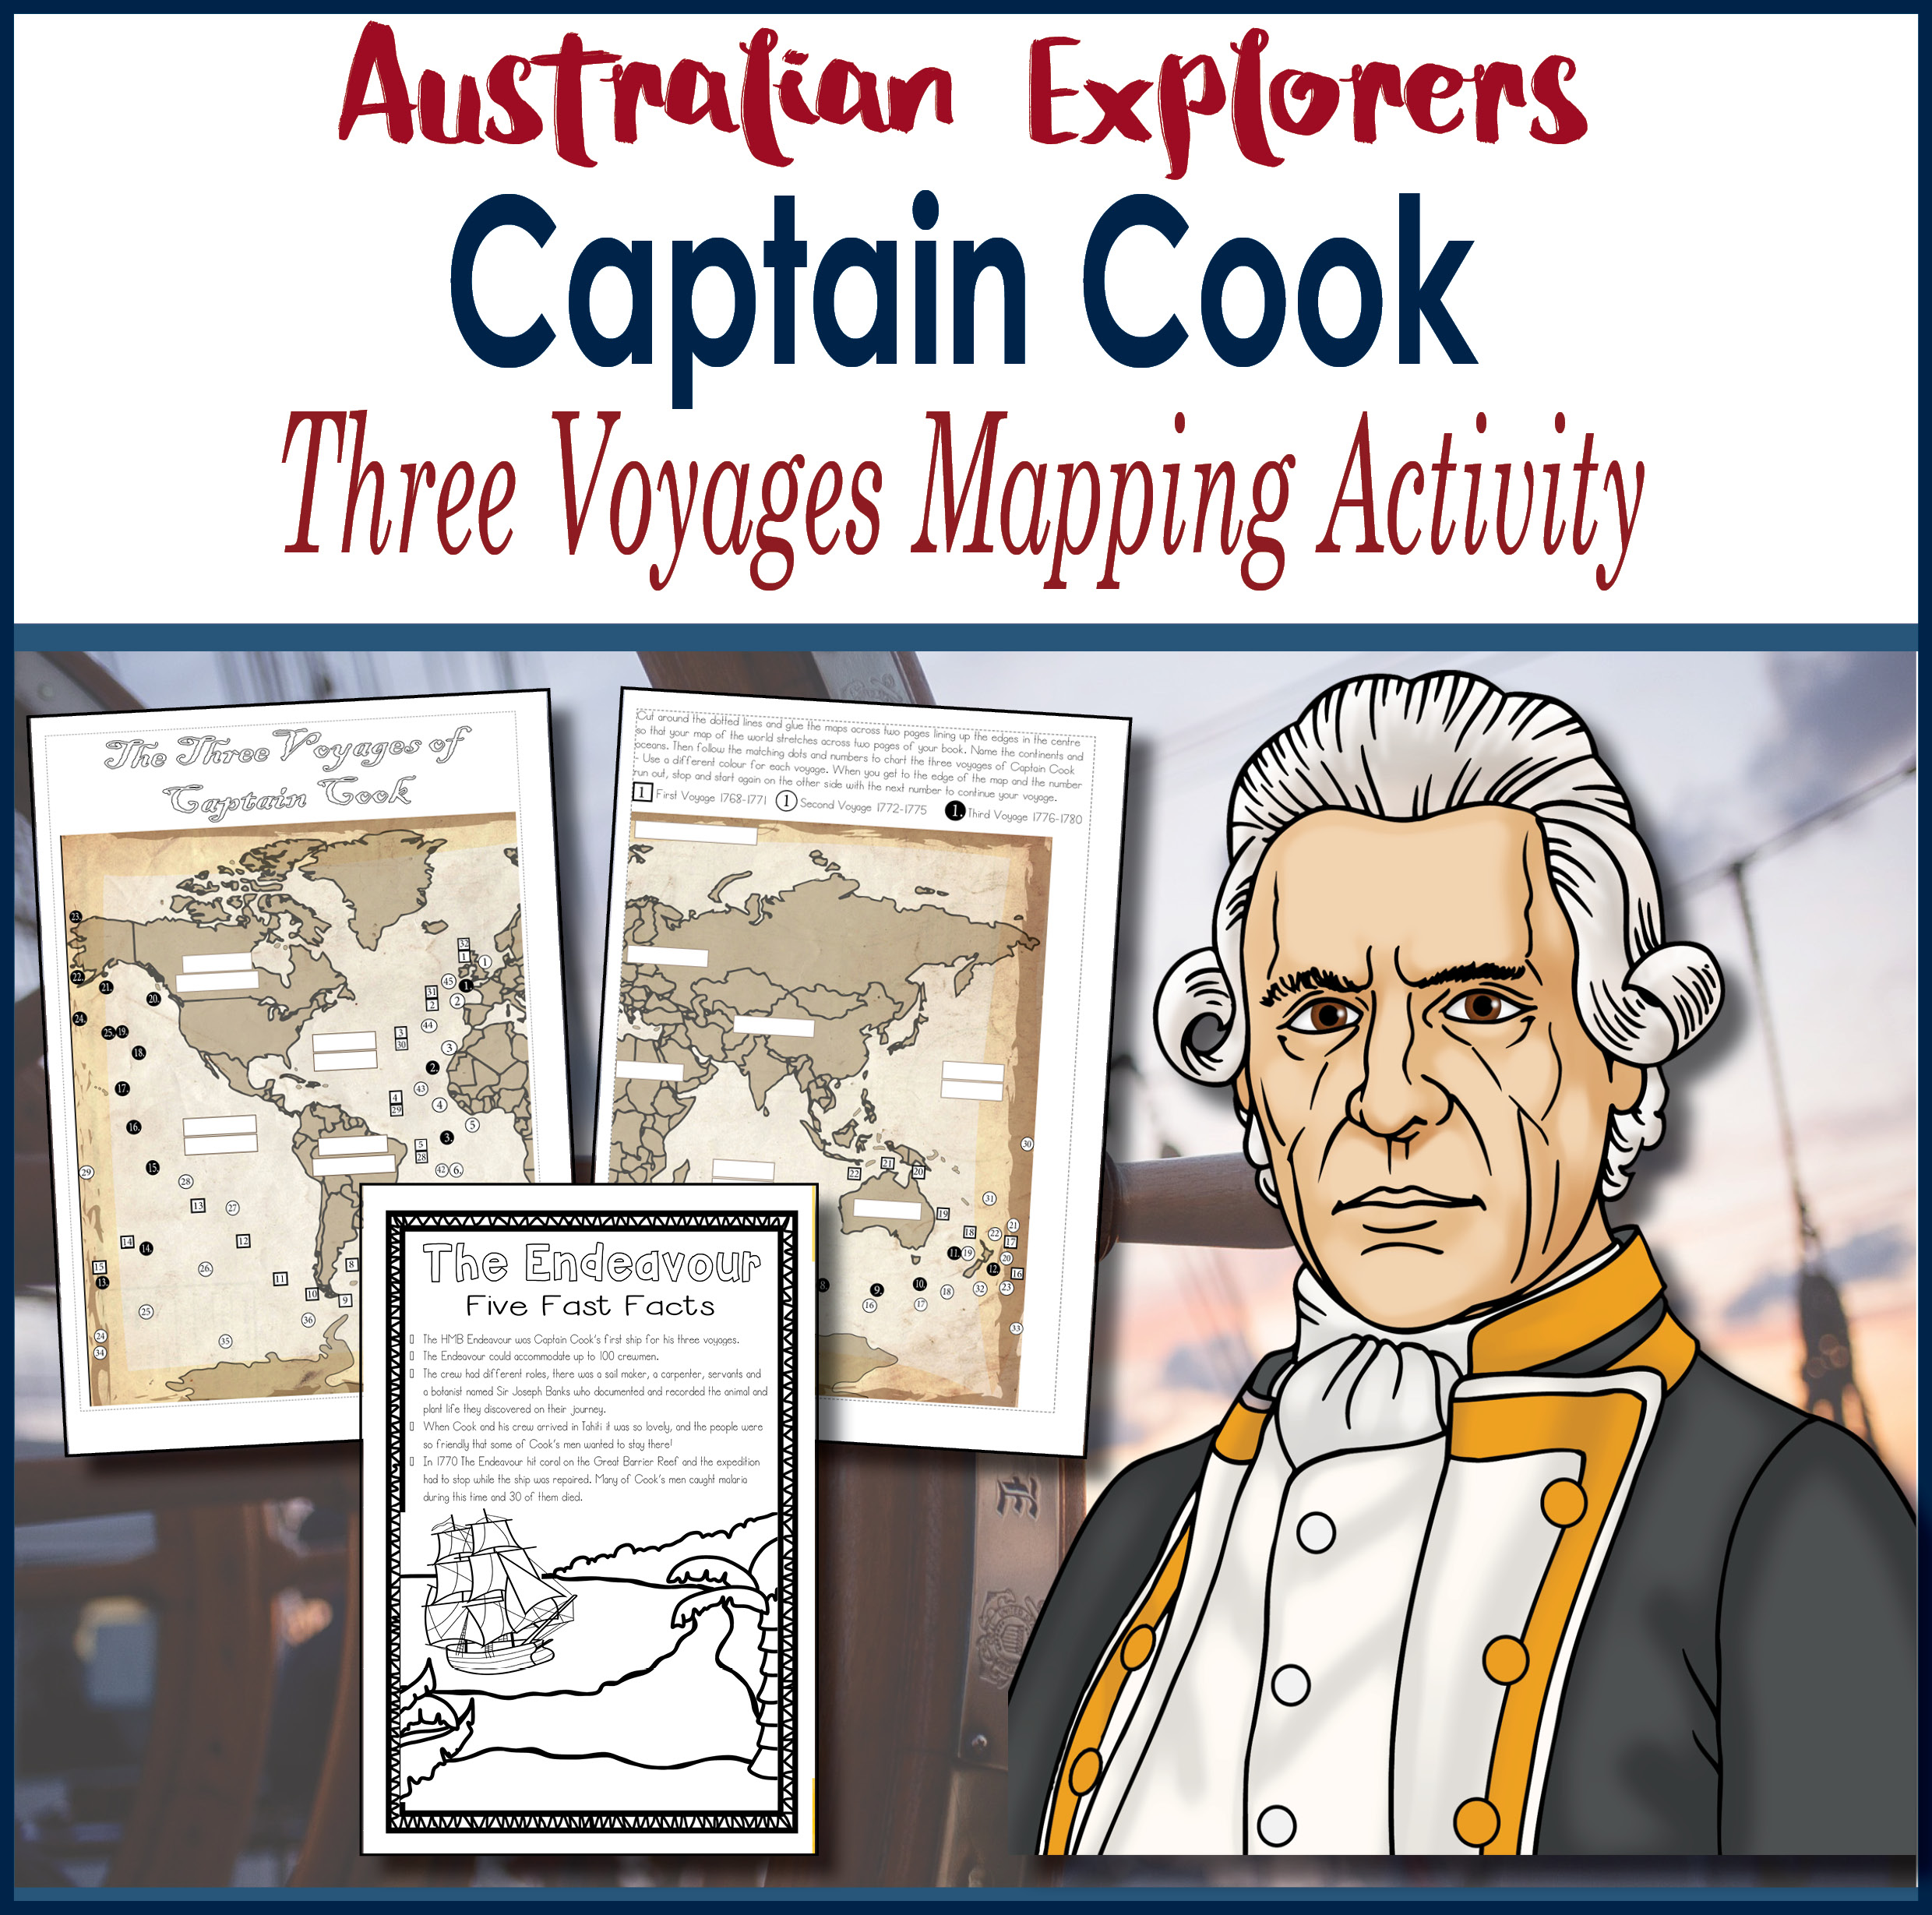 Captain Cook Three Voyages Mapping Activity